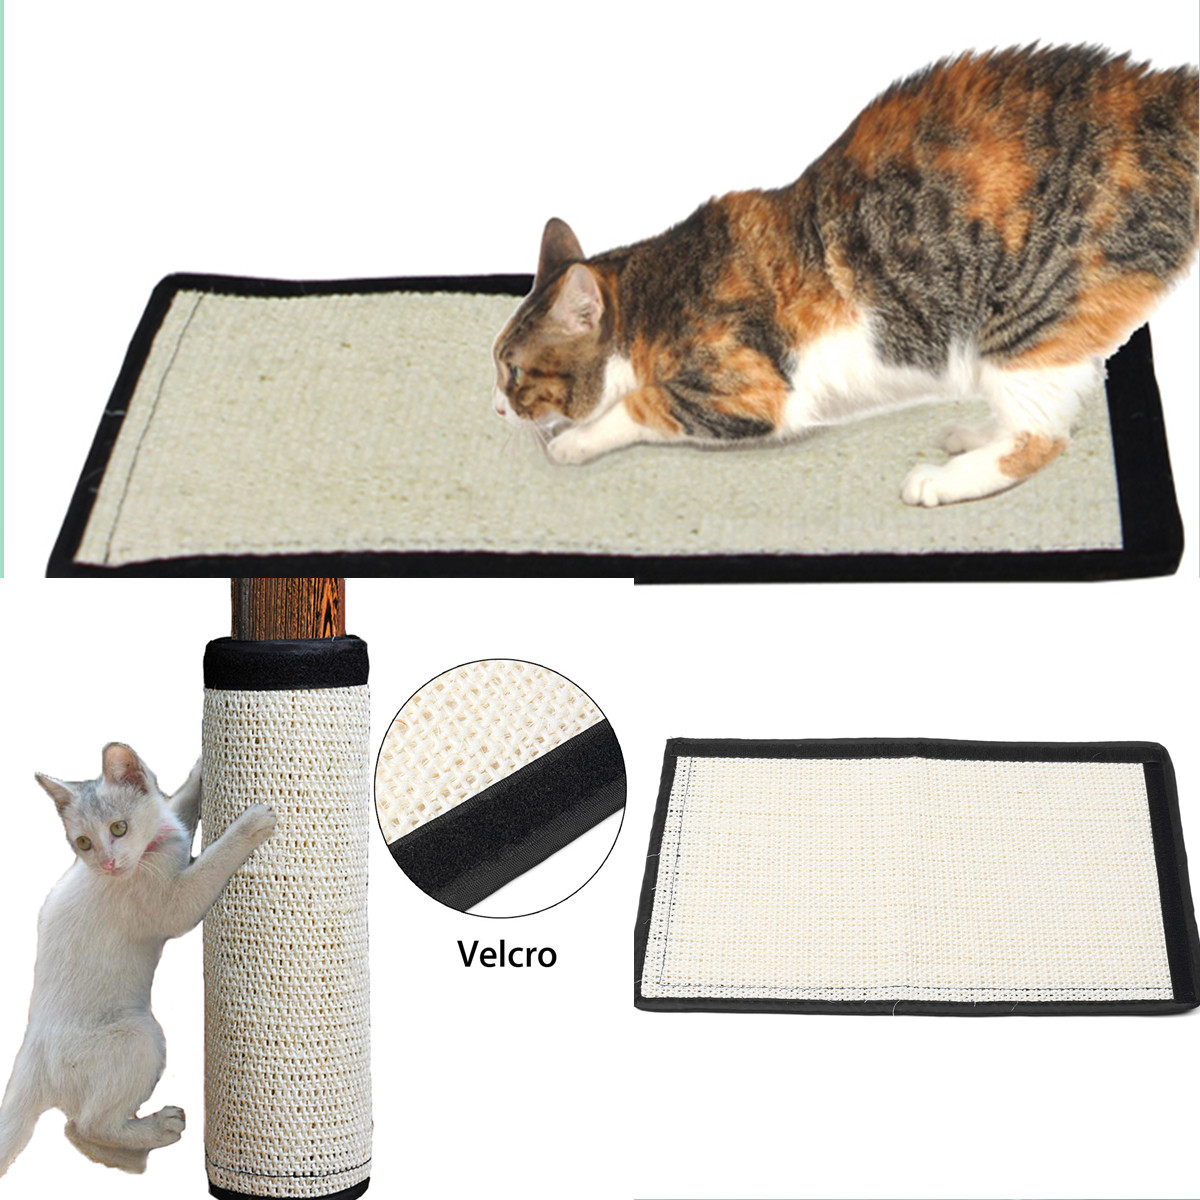 Cat Scratch Toy Catnip Sisal Hemp Kitten Cat Scratching Post Training Toy Sofa Wall Corner Scratcher Pad Mat Board